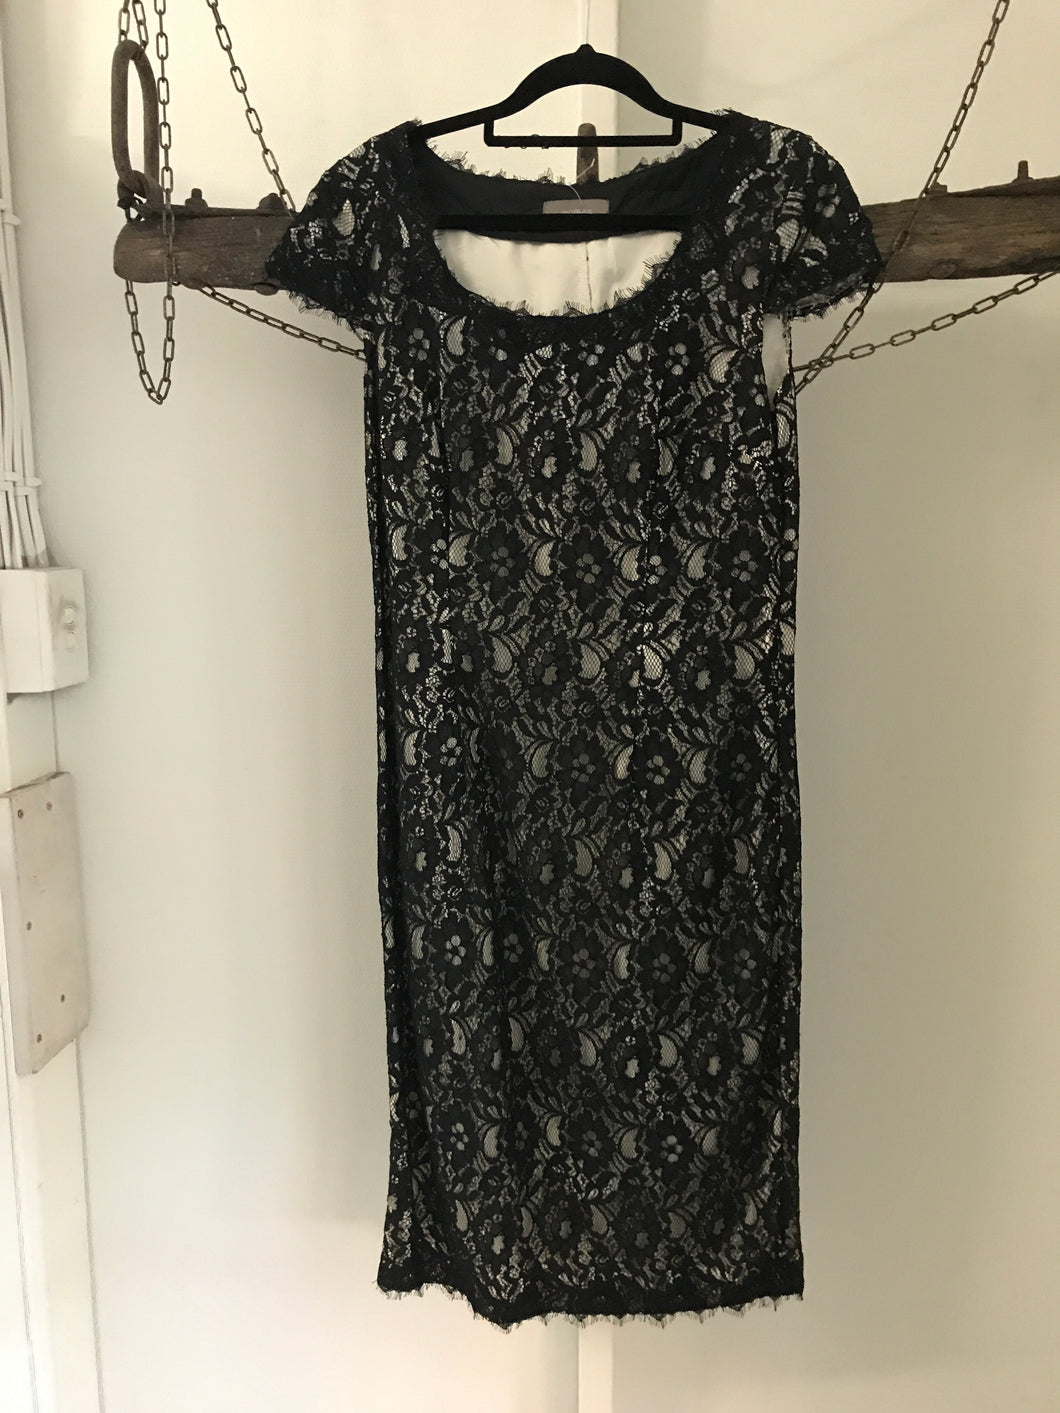 Jacqui e black lace over white lining with short sleeves Size 8